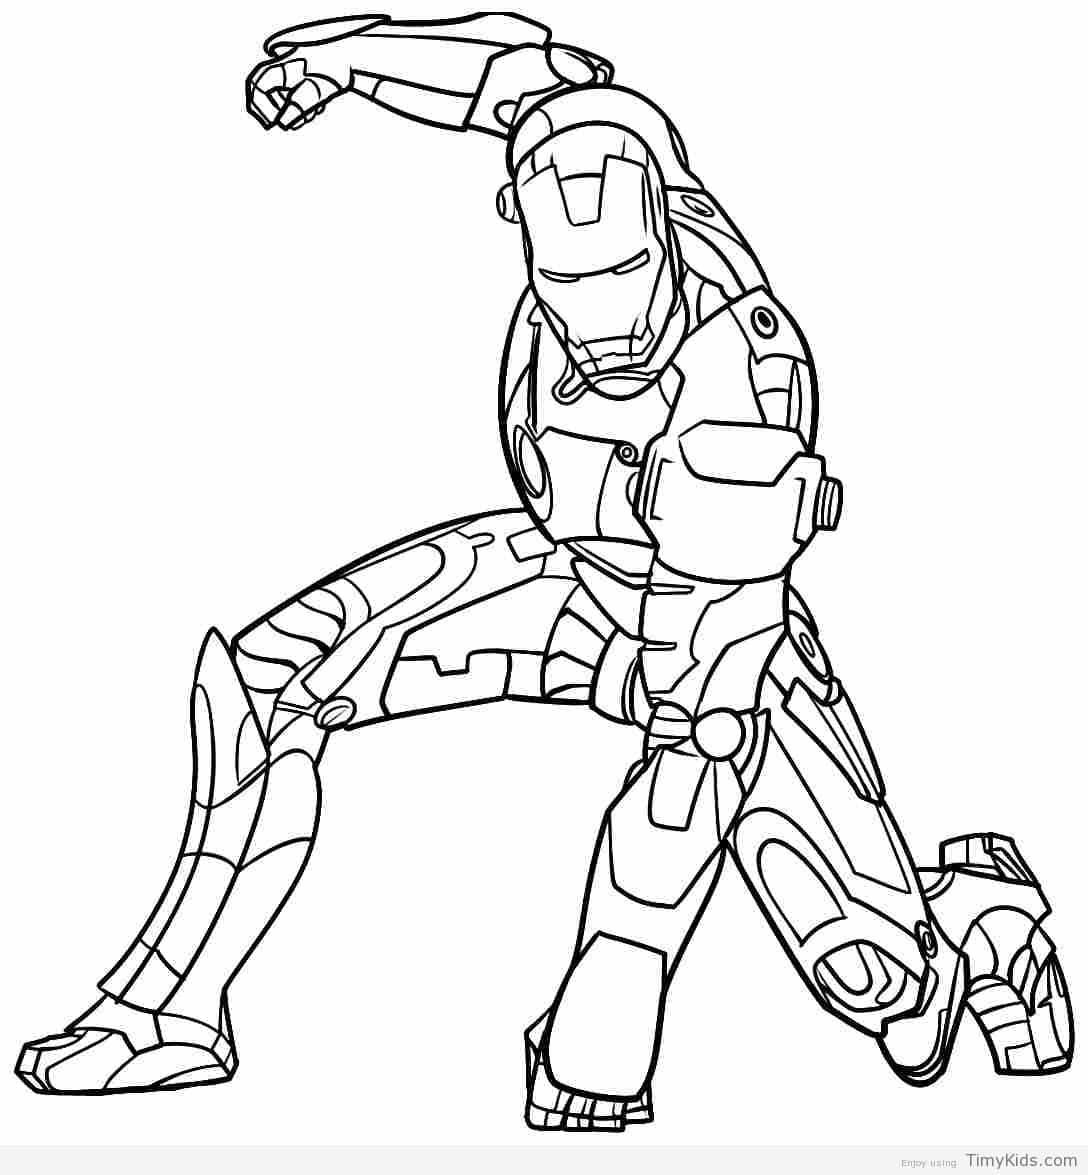 ironman colouring free printable iron man coloring pages for kids ironman colouring 1 1